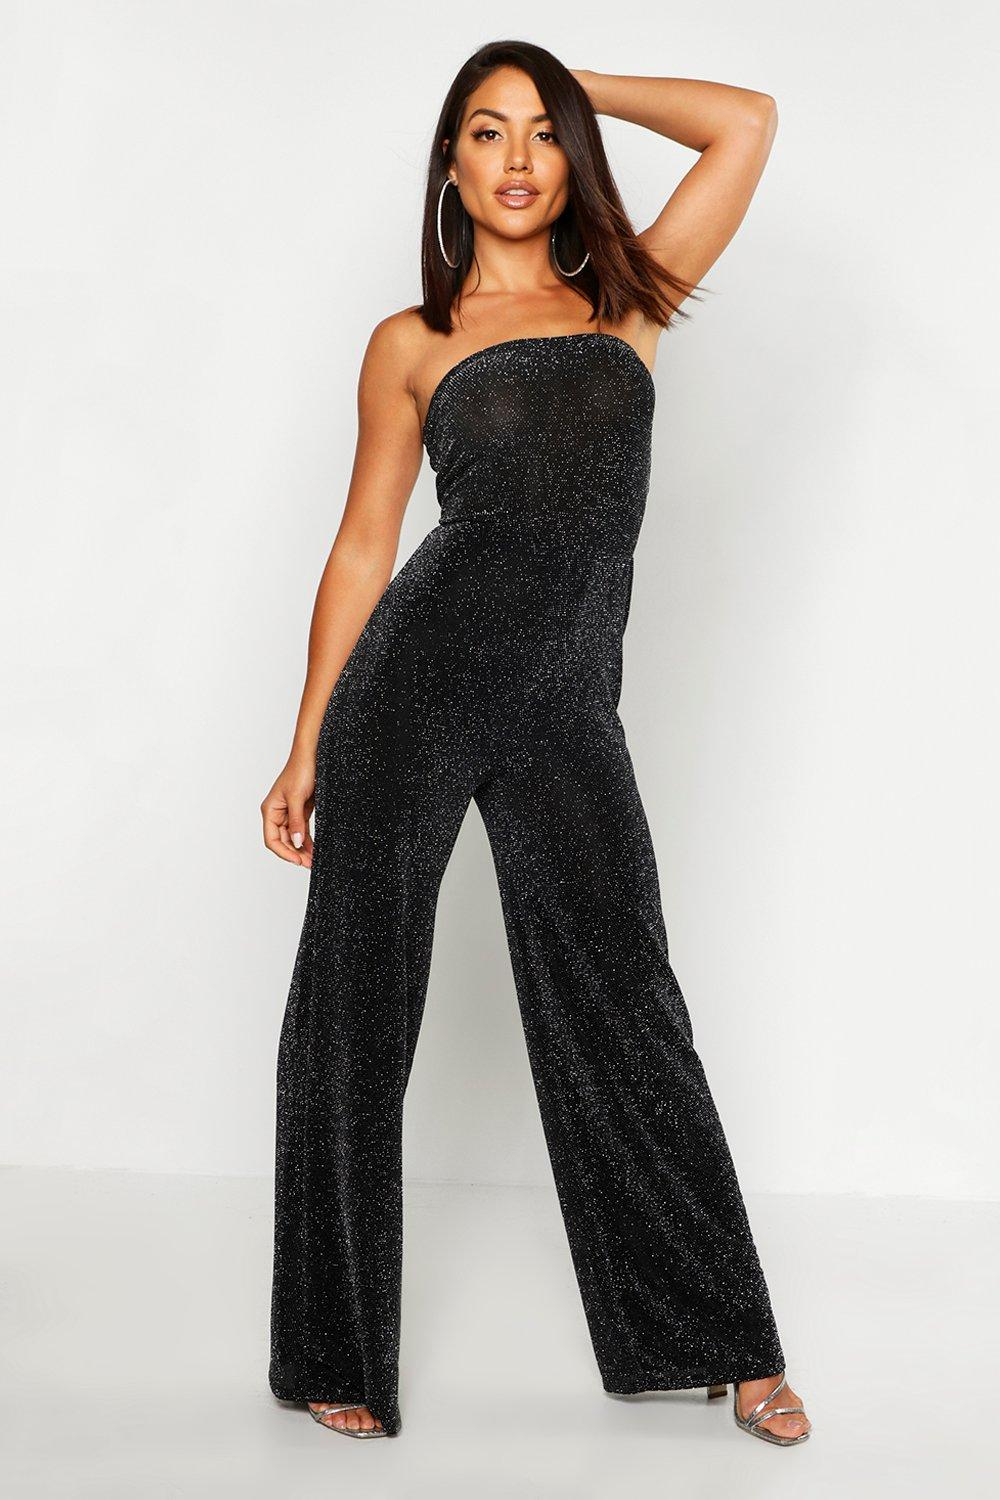 Beth Strapless Wide Leg Sparkle Jumpsuit at boohoo.com